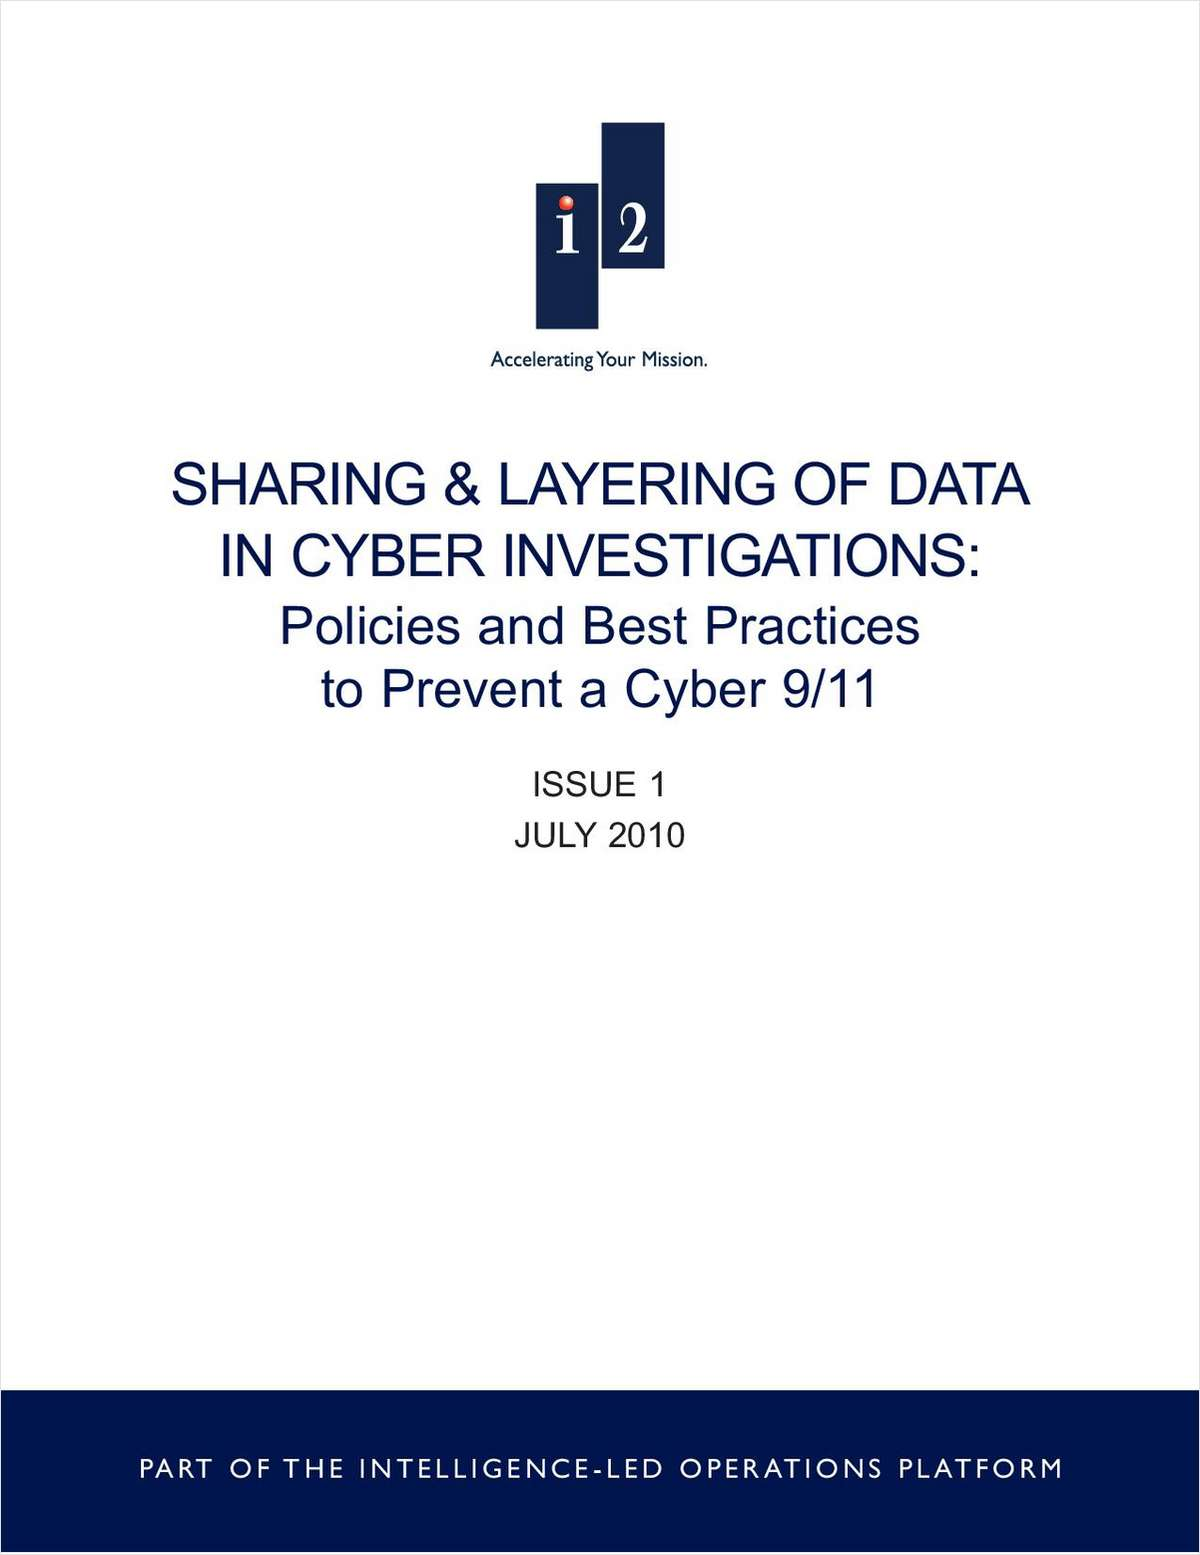 Sharing & Layering of Data in Cyber Investigations